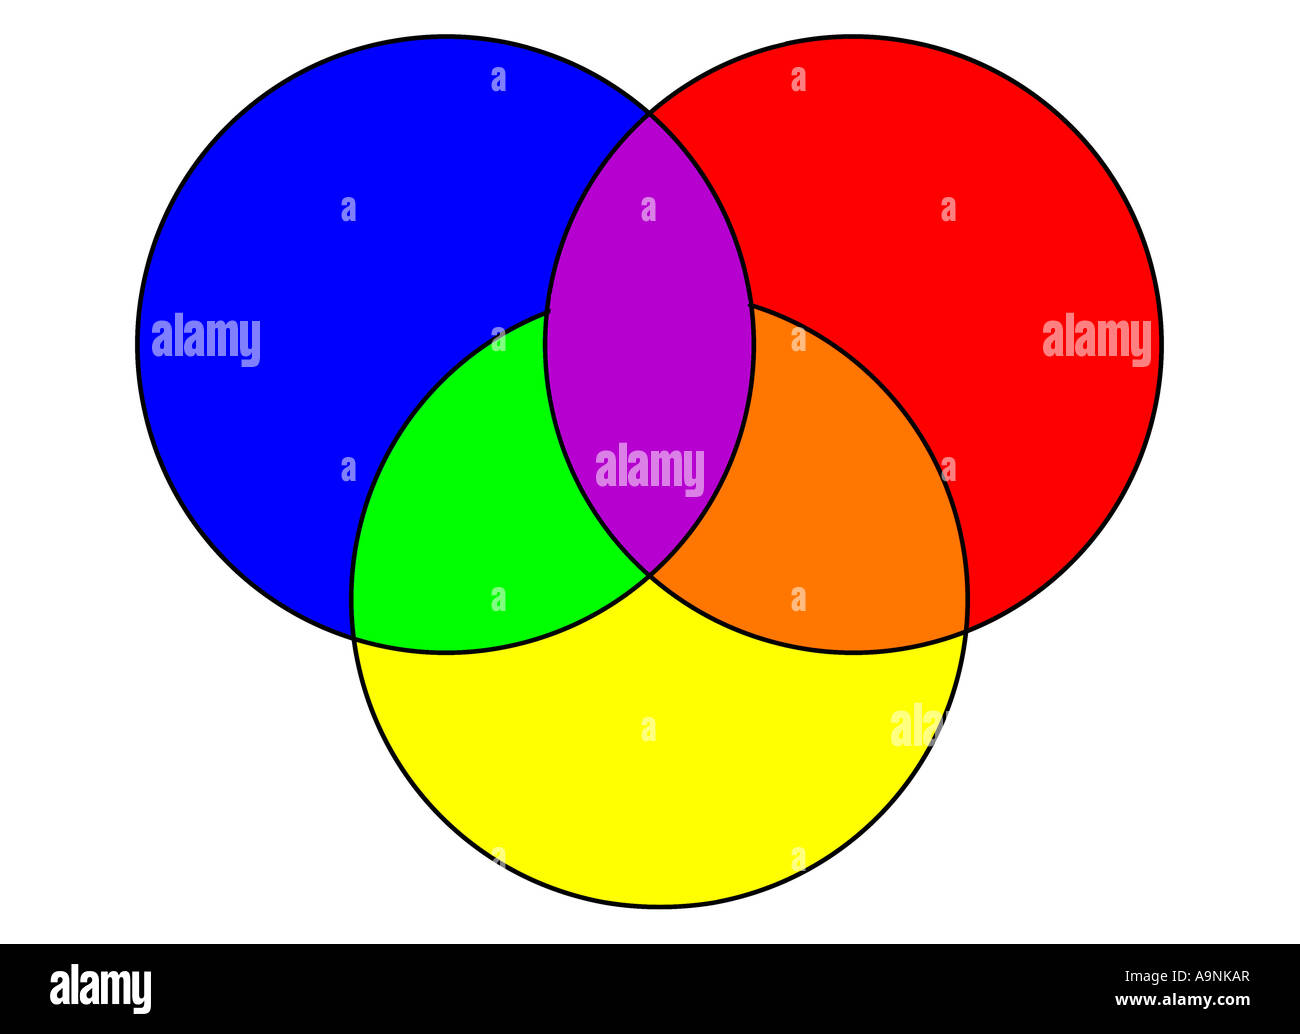 Image Of A Color Wheel With The Three Primary Colors Red Yellow And Blue Overlapping To Show Blended Areas Purple Orange